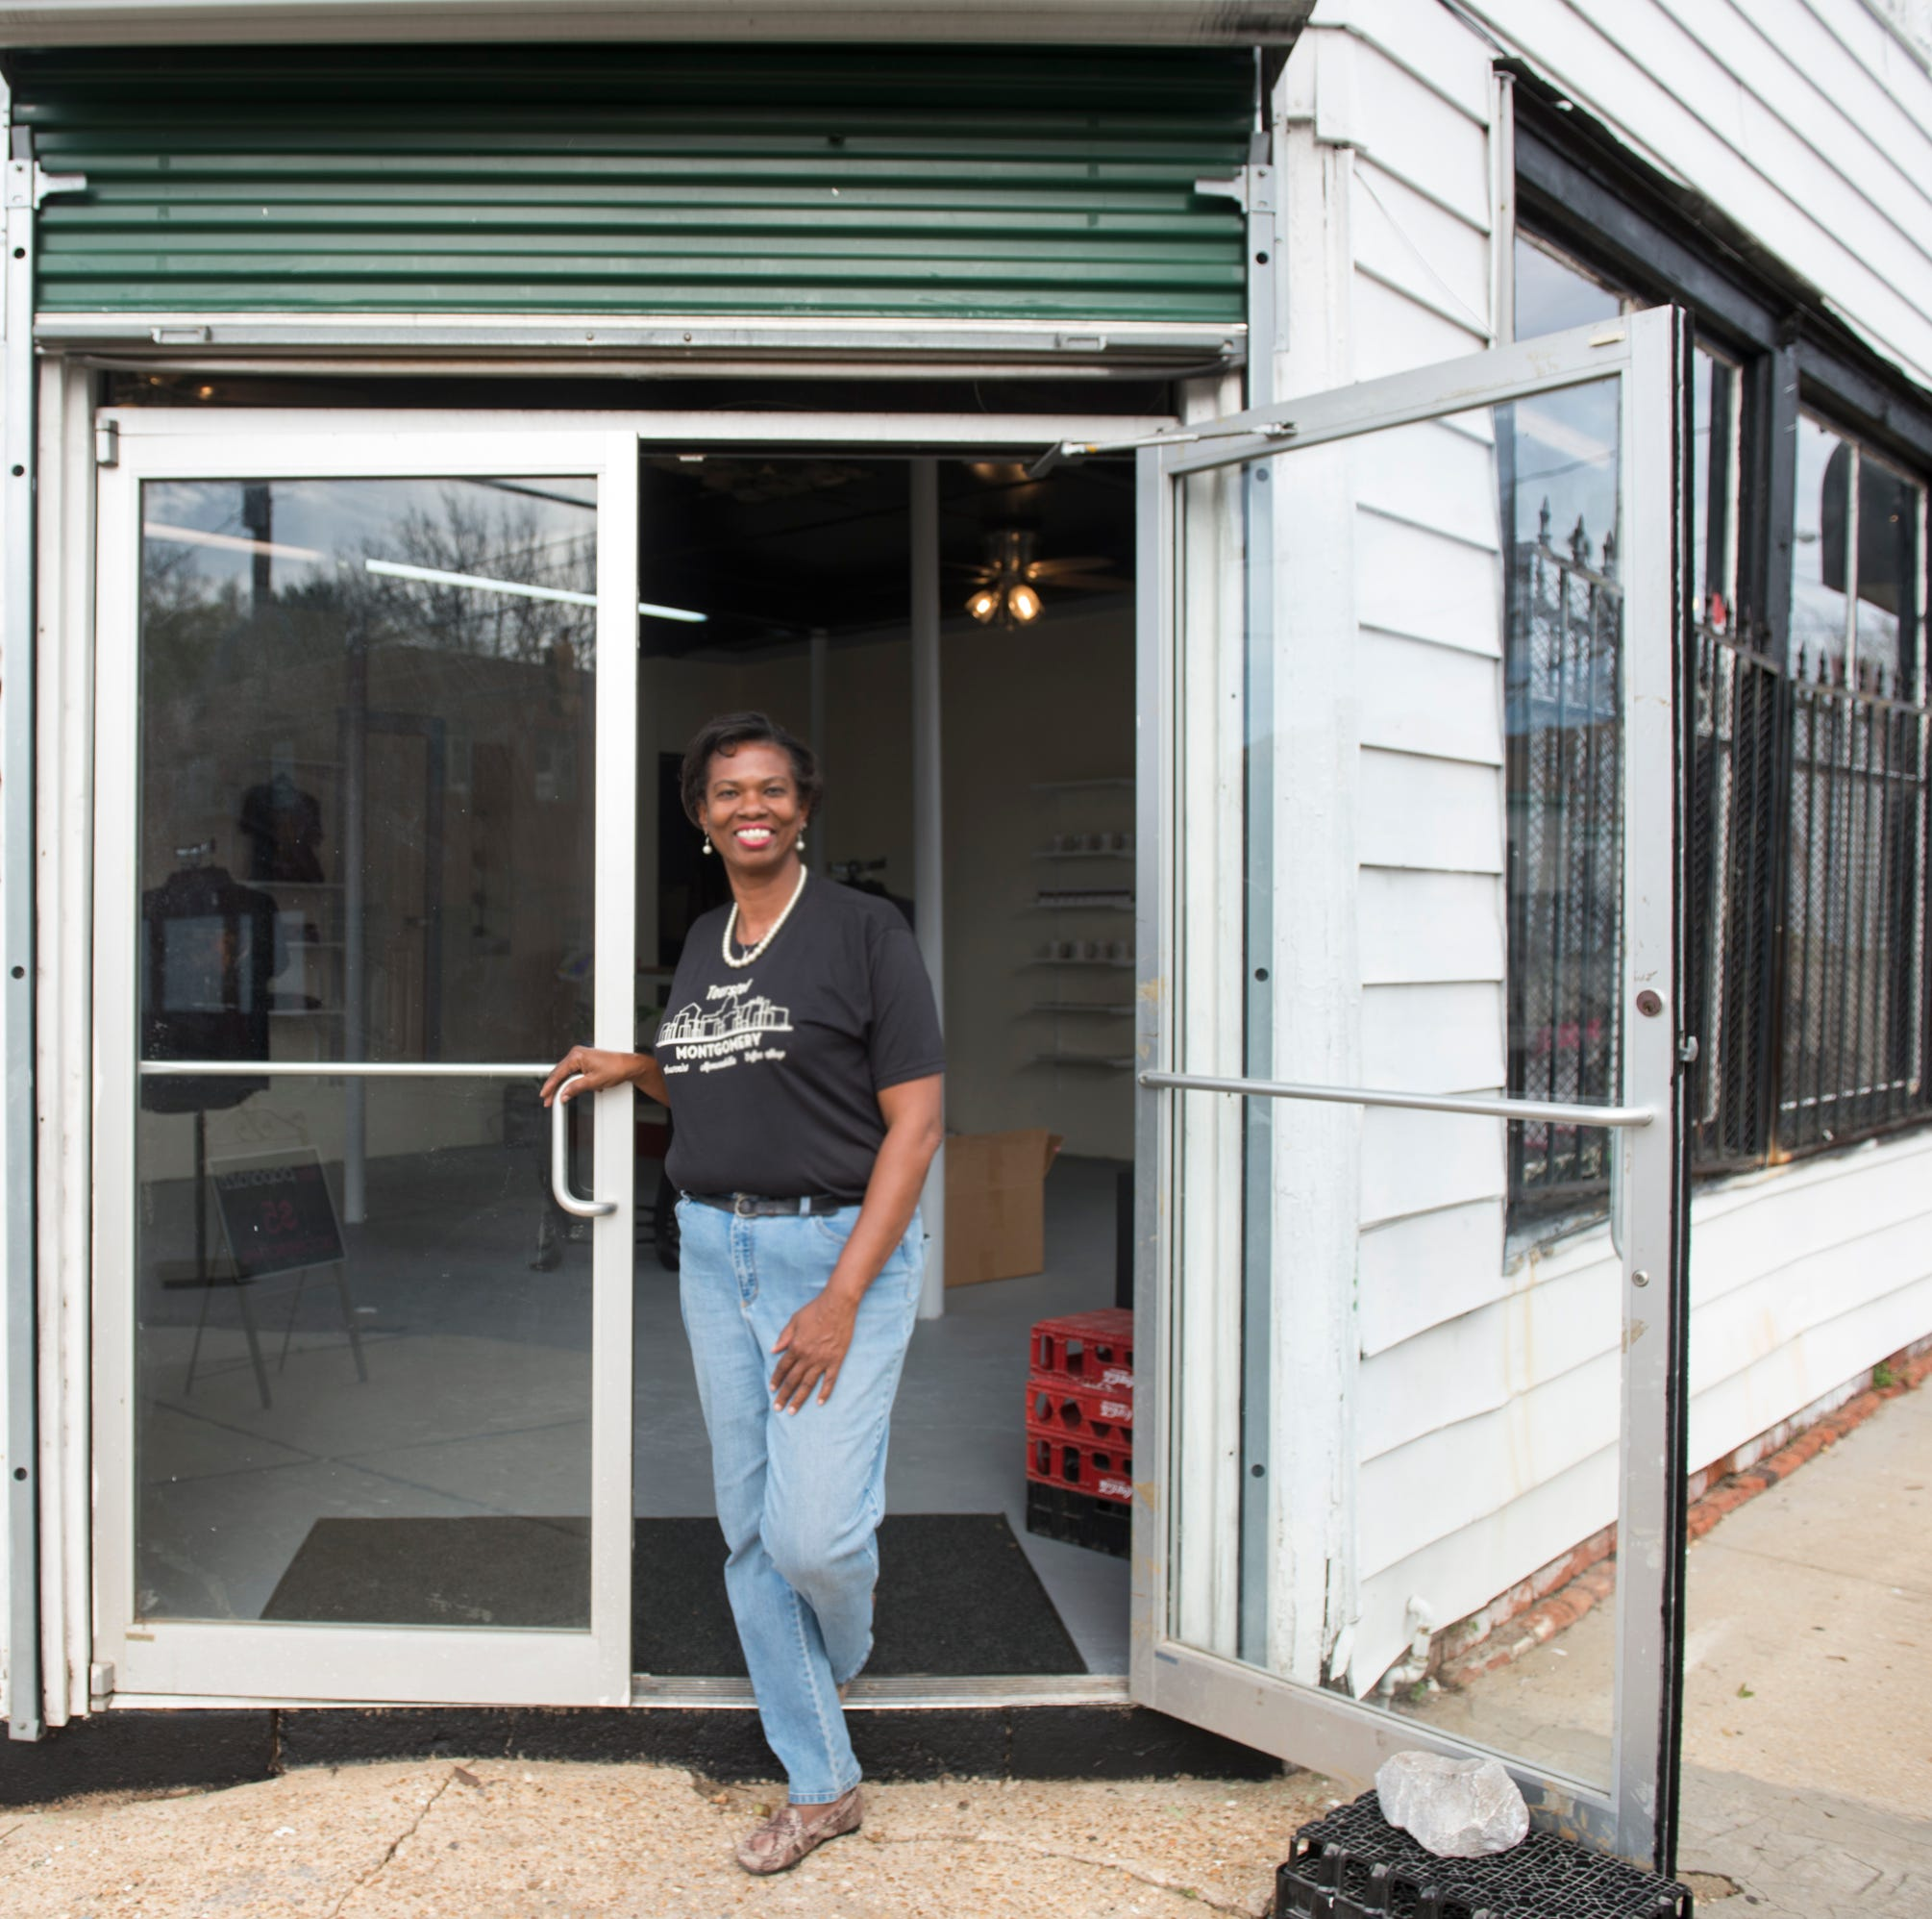 New coffee, souvenir shop to open in historic Centennial Hill neighborhood